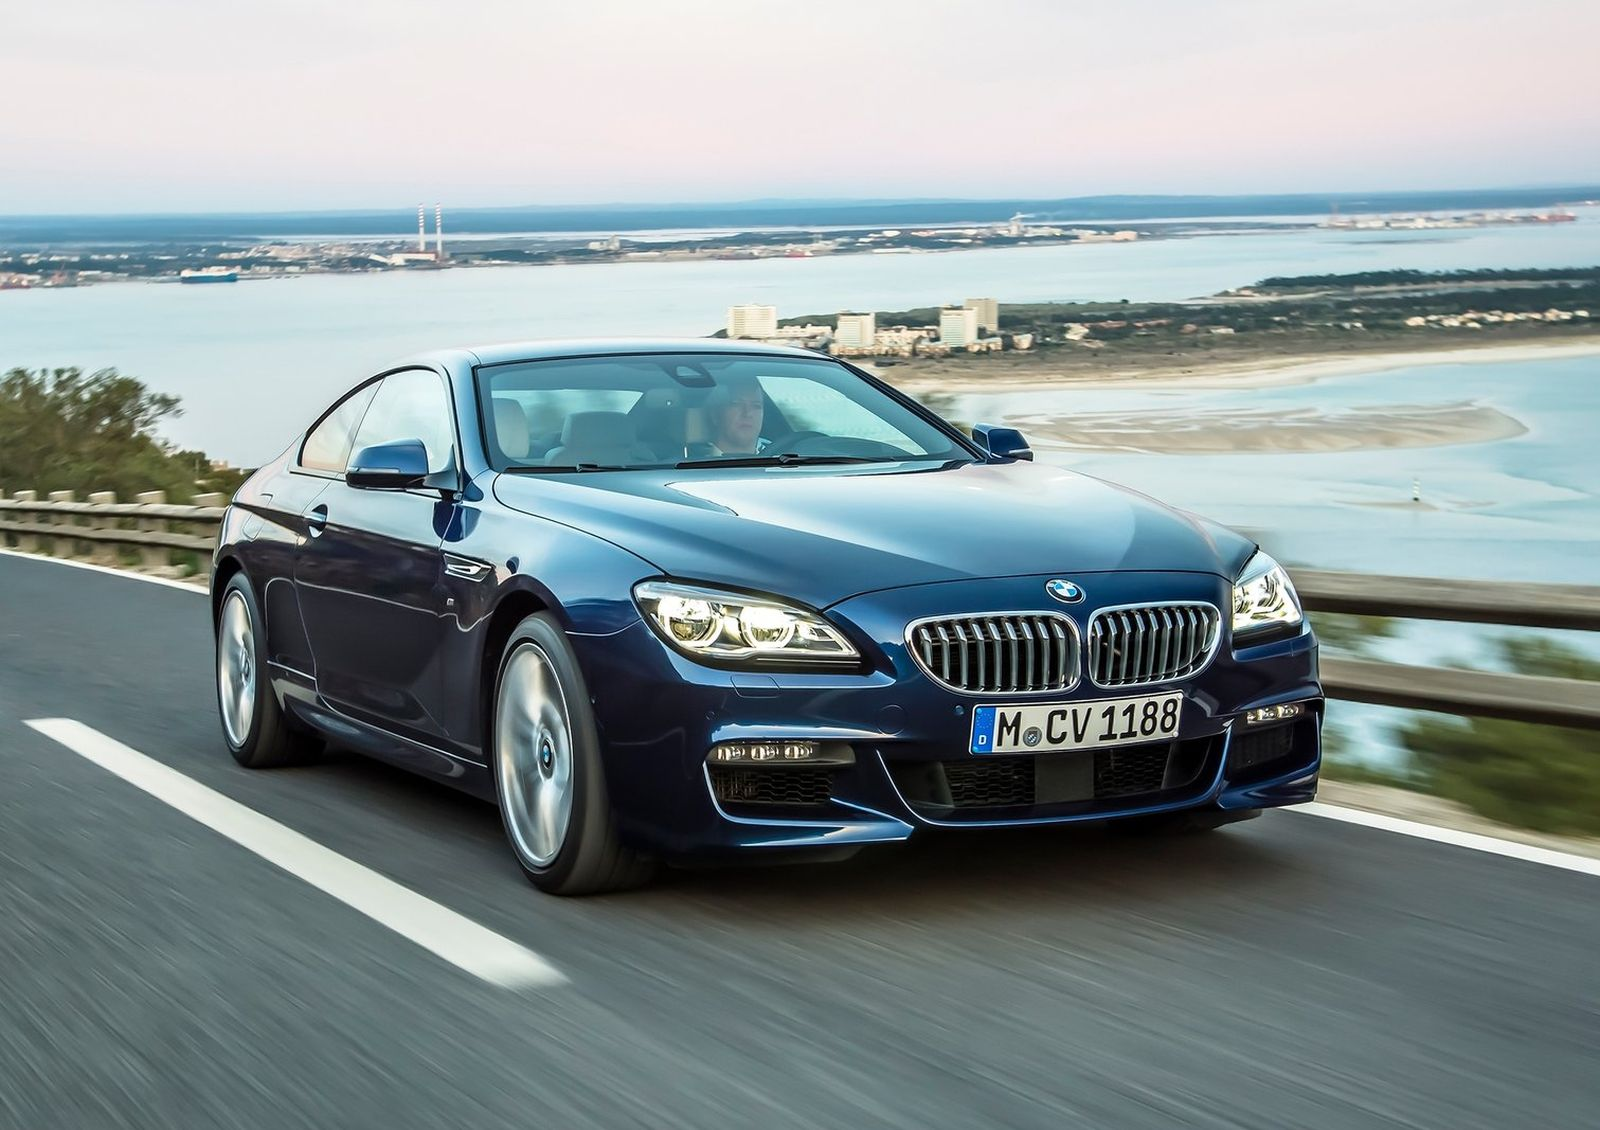 Bmw 6 serie coupe